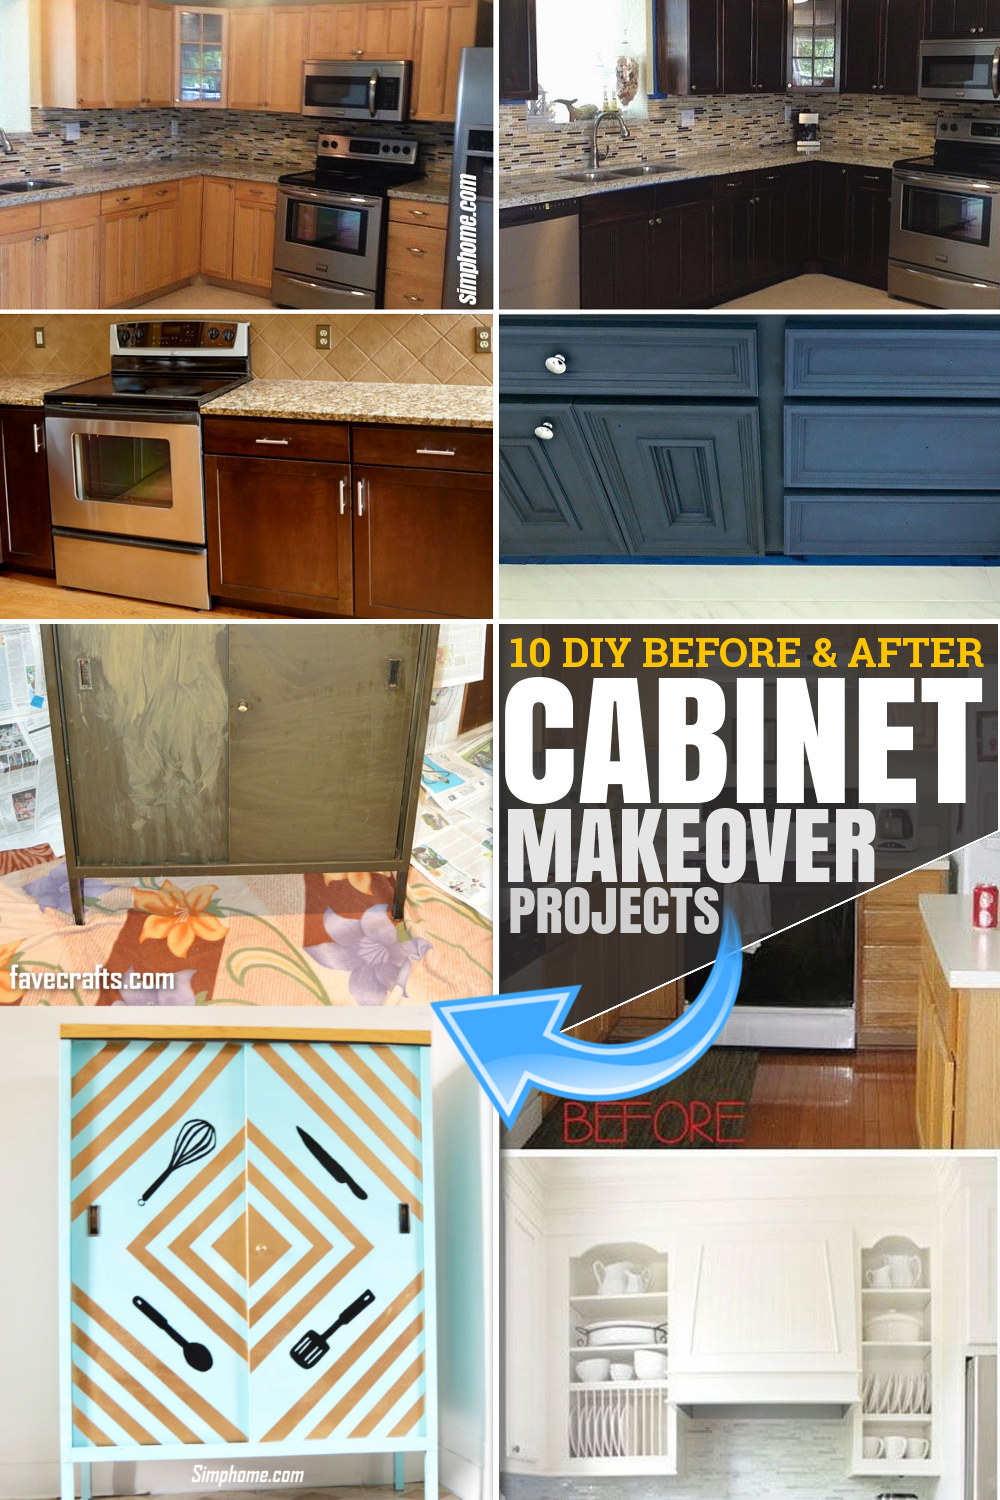 10 DIY before and after cabinet makeover projects via SIMPHOME.COM Featured Pinterest Image